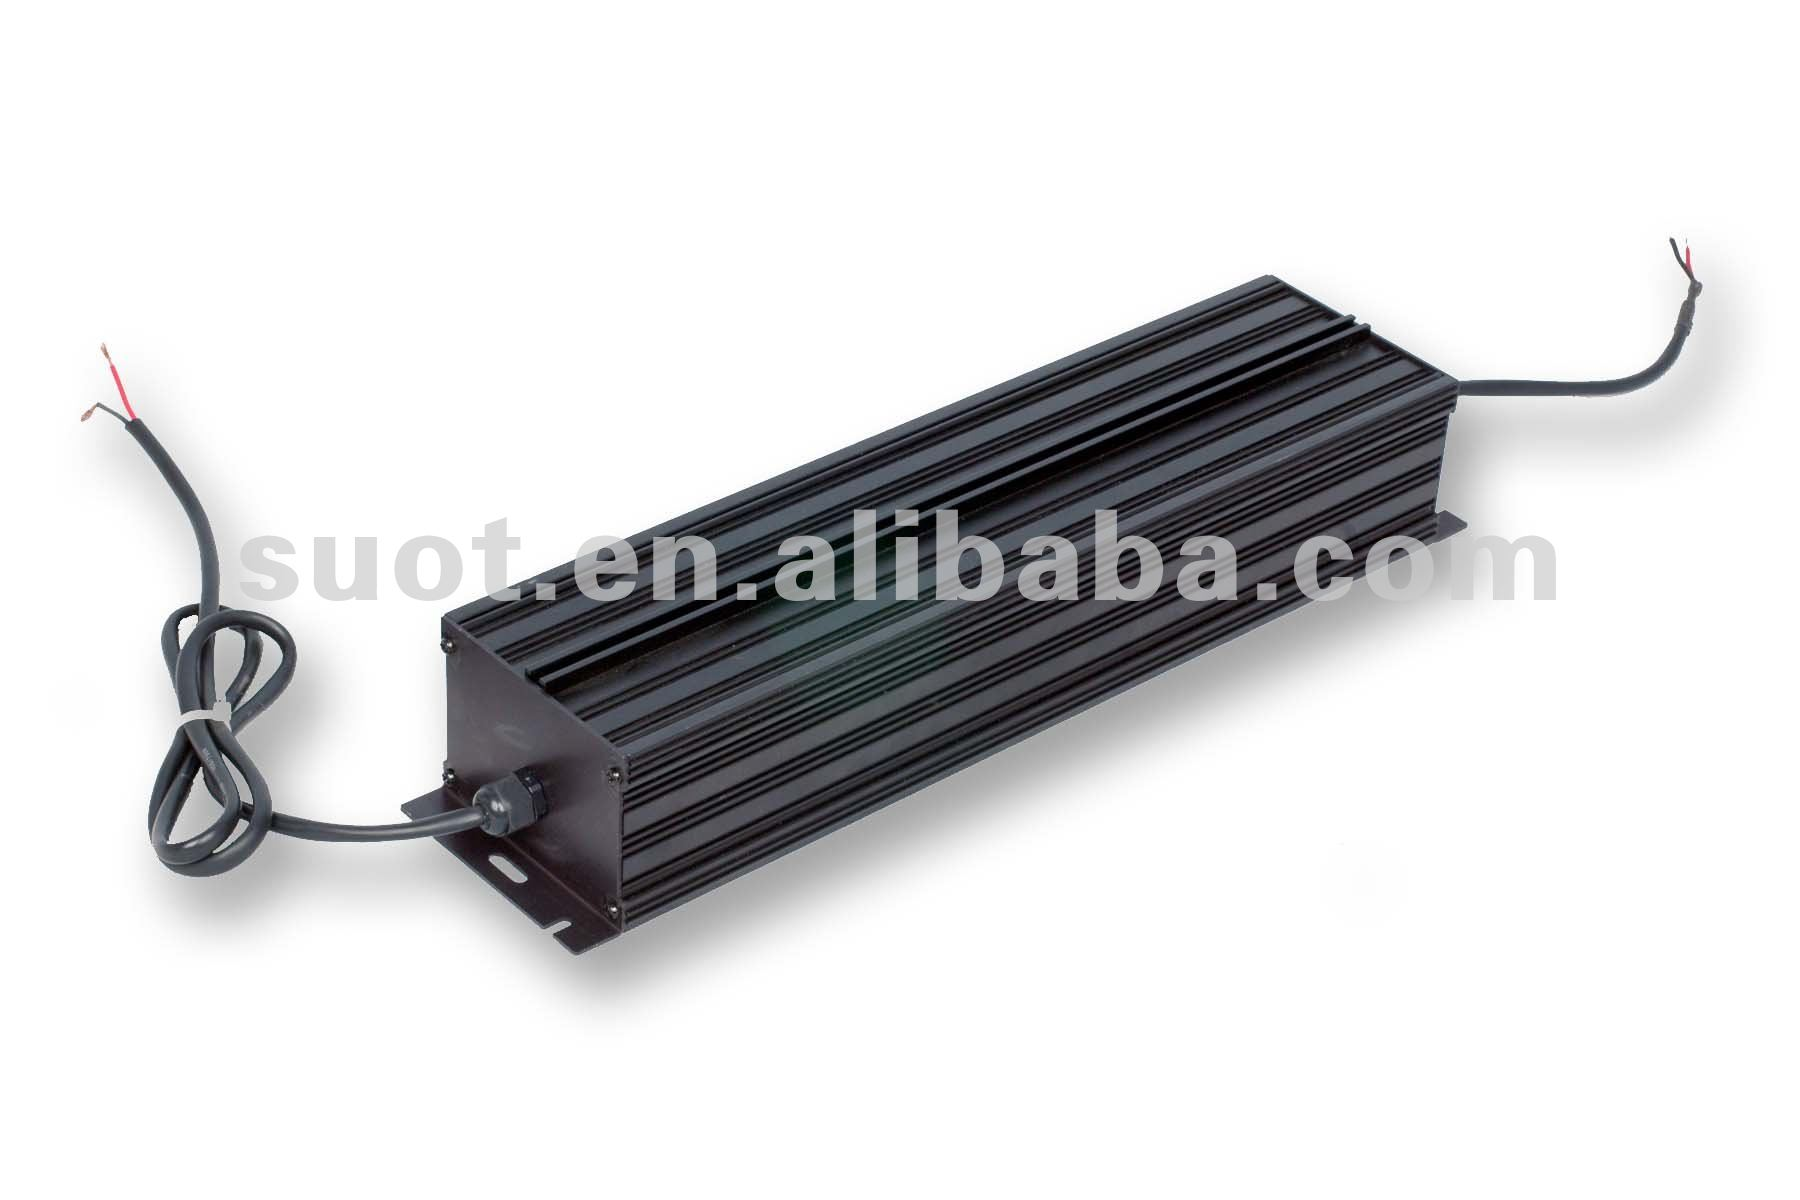 1000W electronic ballast for HPS lamps